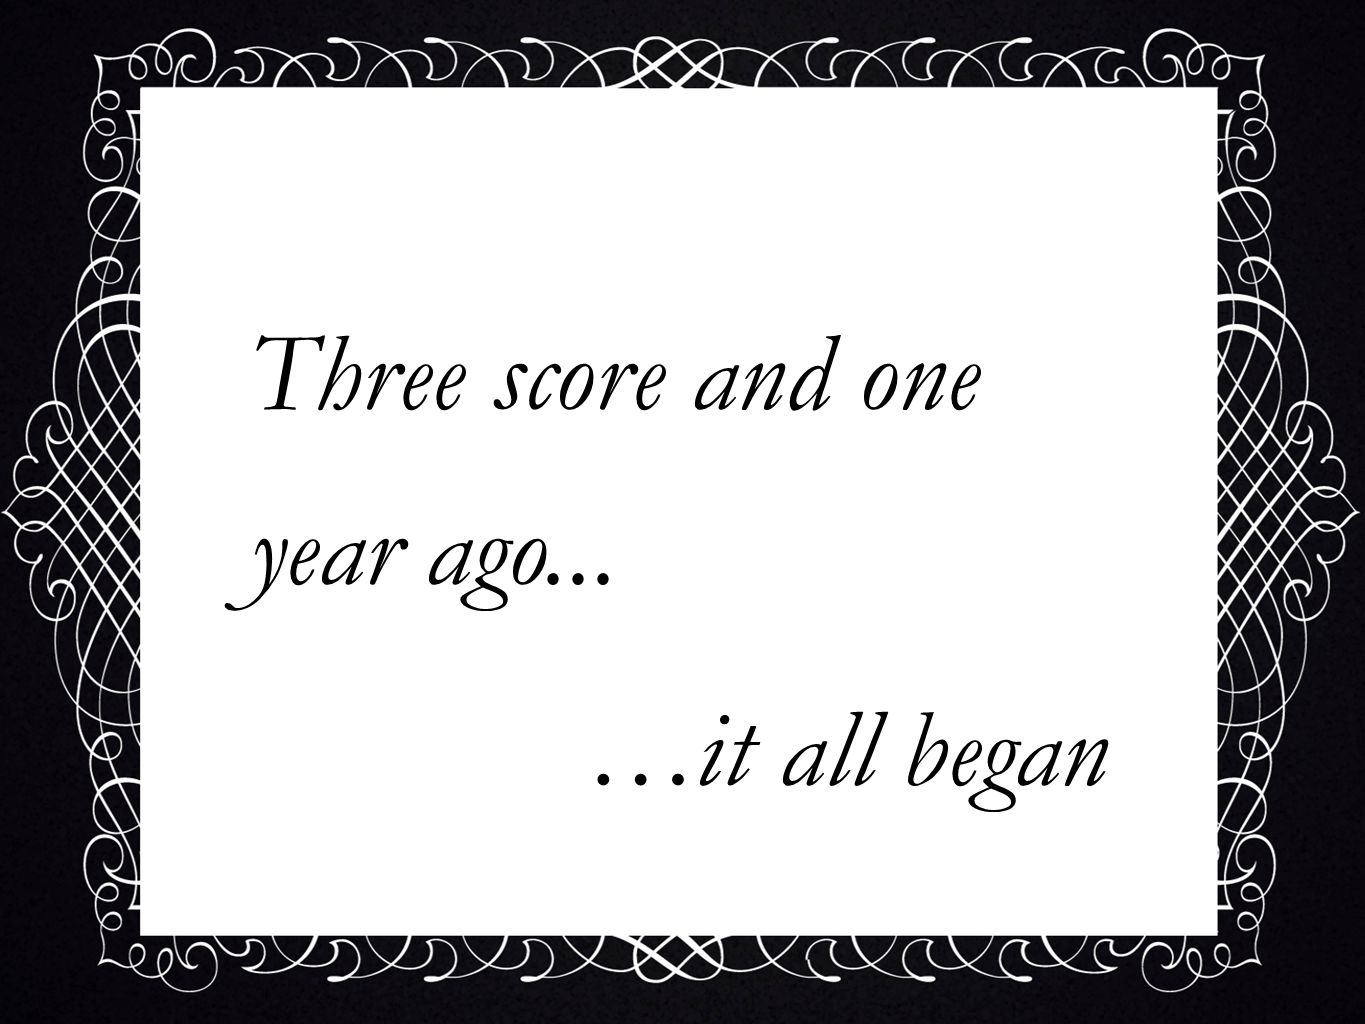 Three score and one year ago...